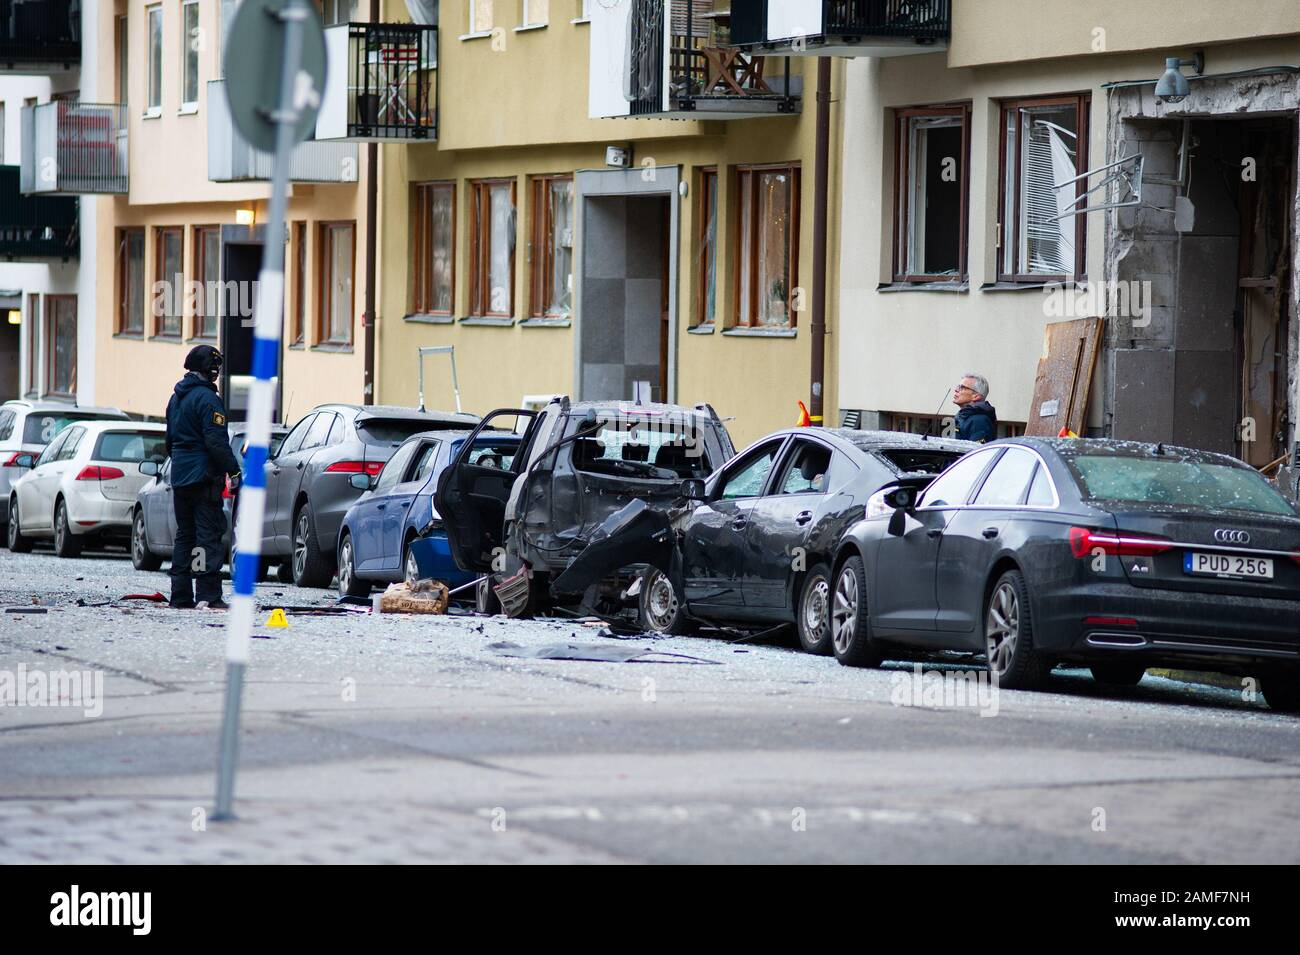 A very powerful explosion occurred at a multi-family house on Östermalm in Stockholm the night before Monday. The gate and cars were completely destroyed and several people were evacuated. Stock Photo